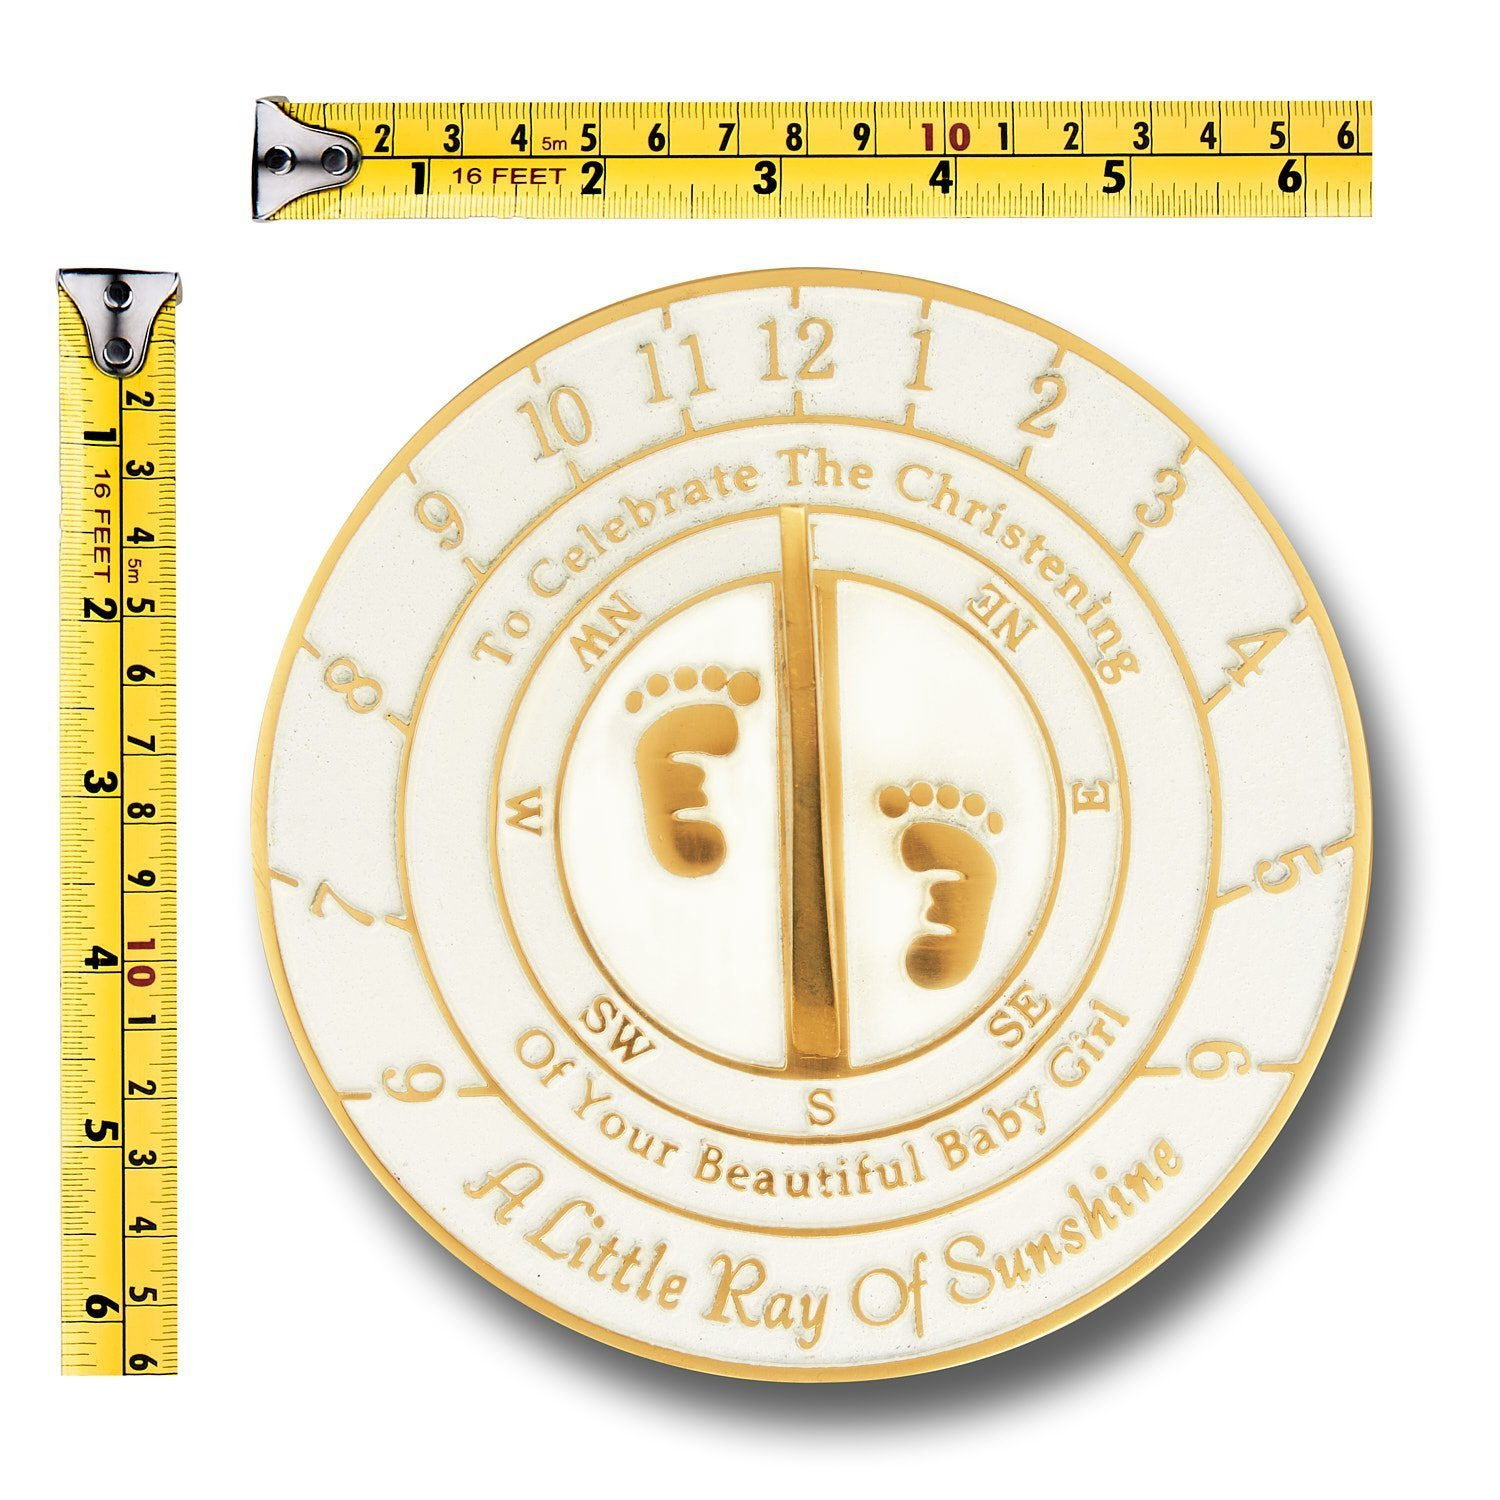 Creative Sundial A Special Baby Gift